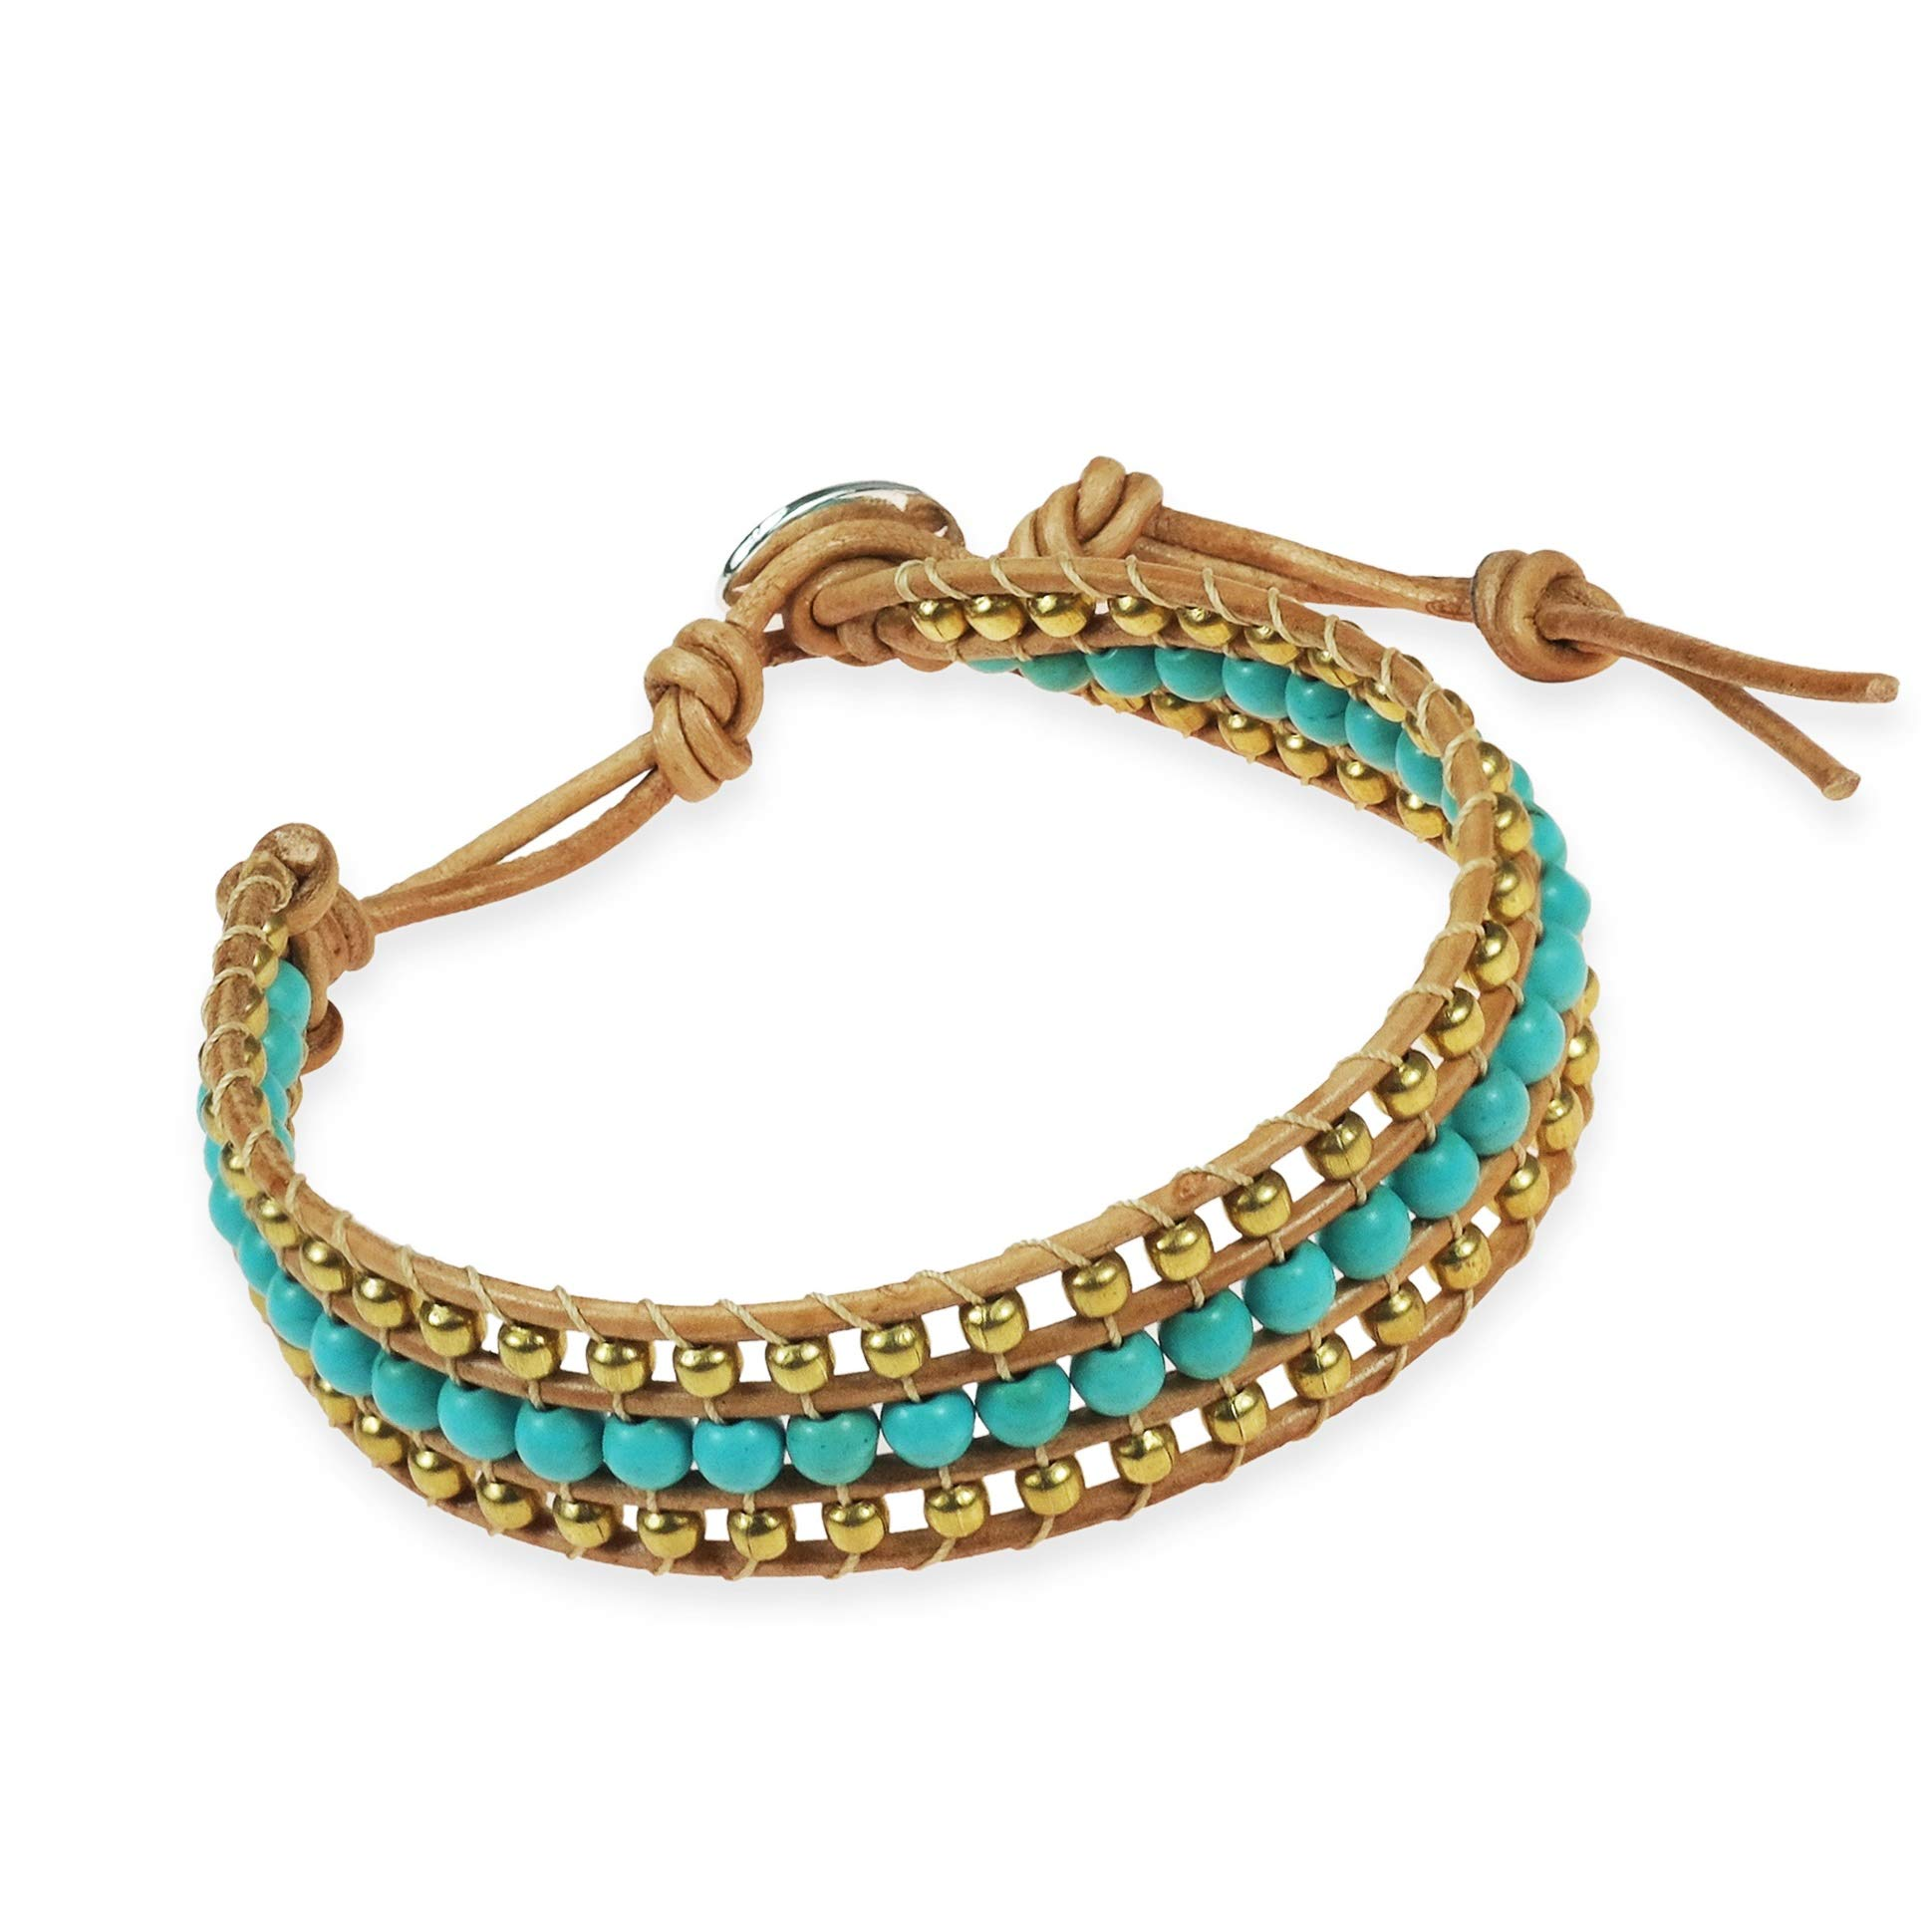 AeraVida Bedazzling Belle Simulated Turquoise & Fashion Brass Beads Nude Leather Adjustable Wrist Pull Bracelet